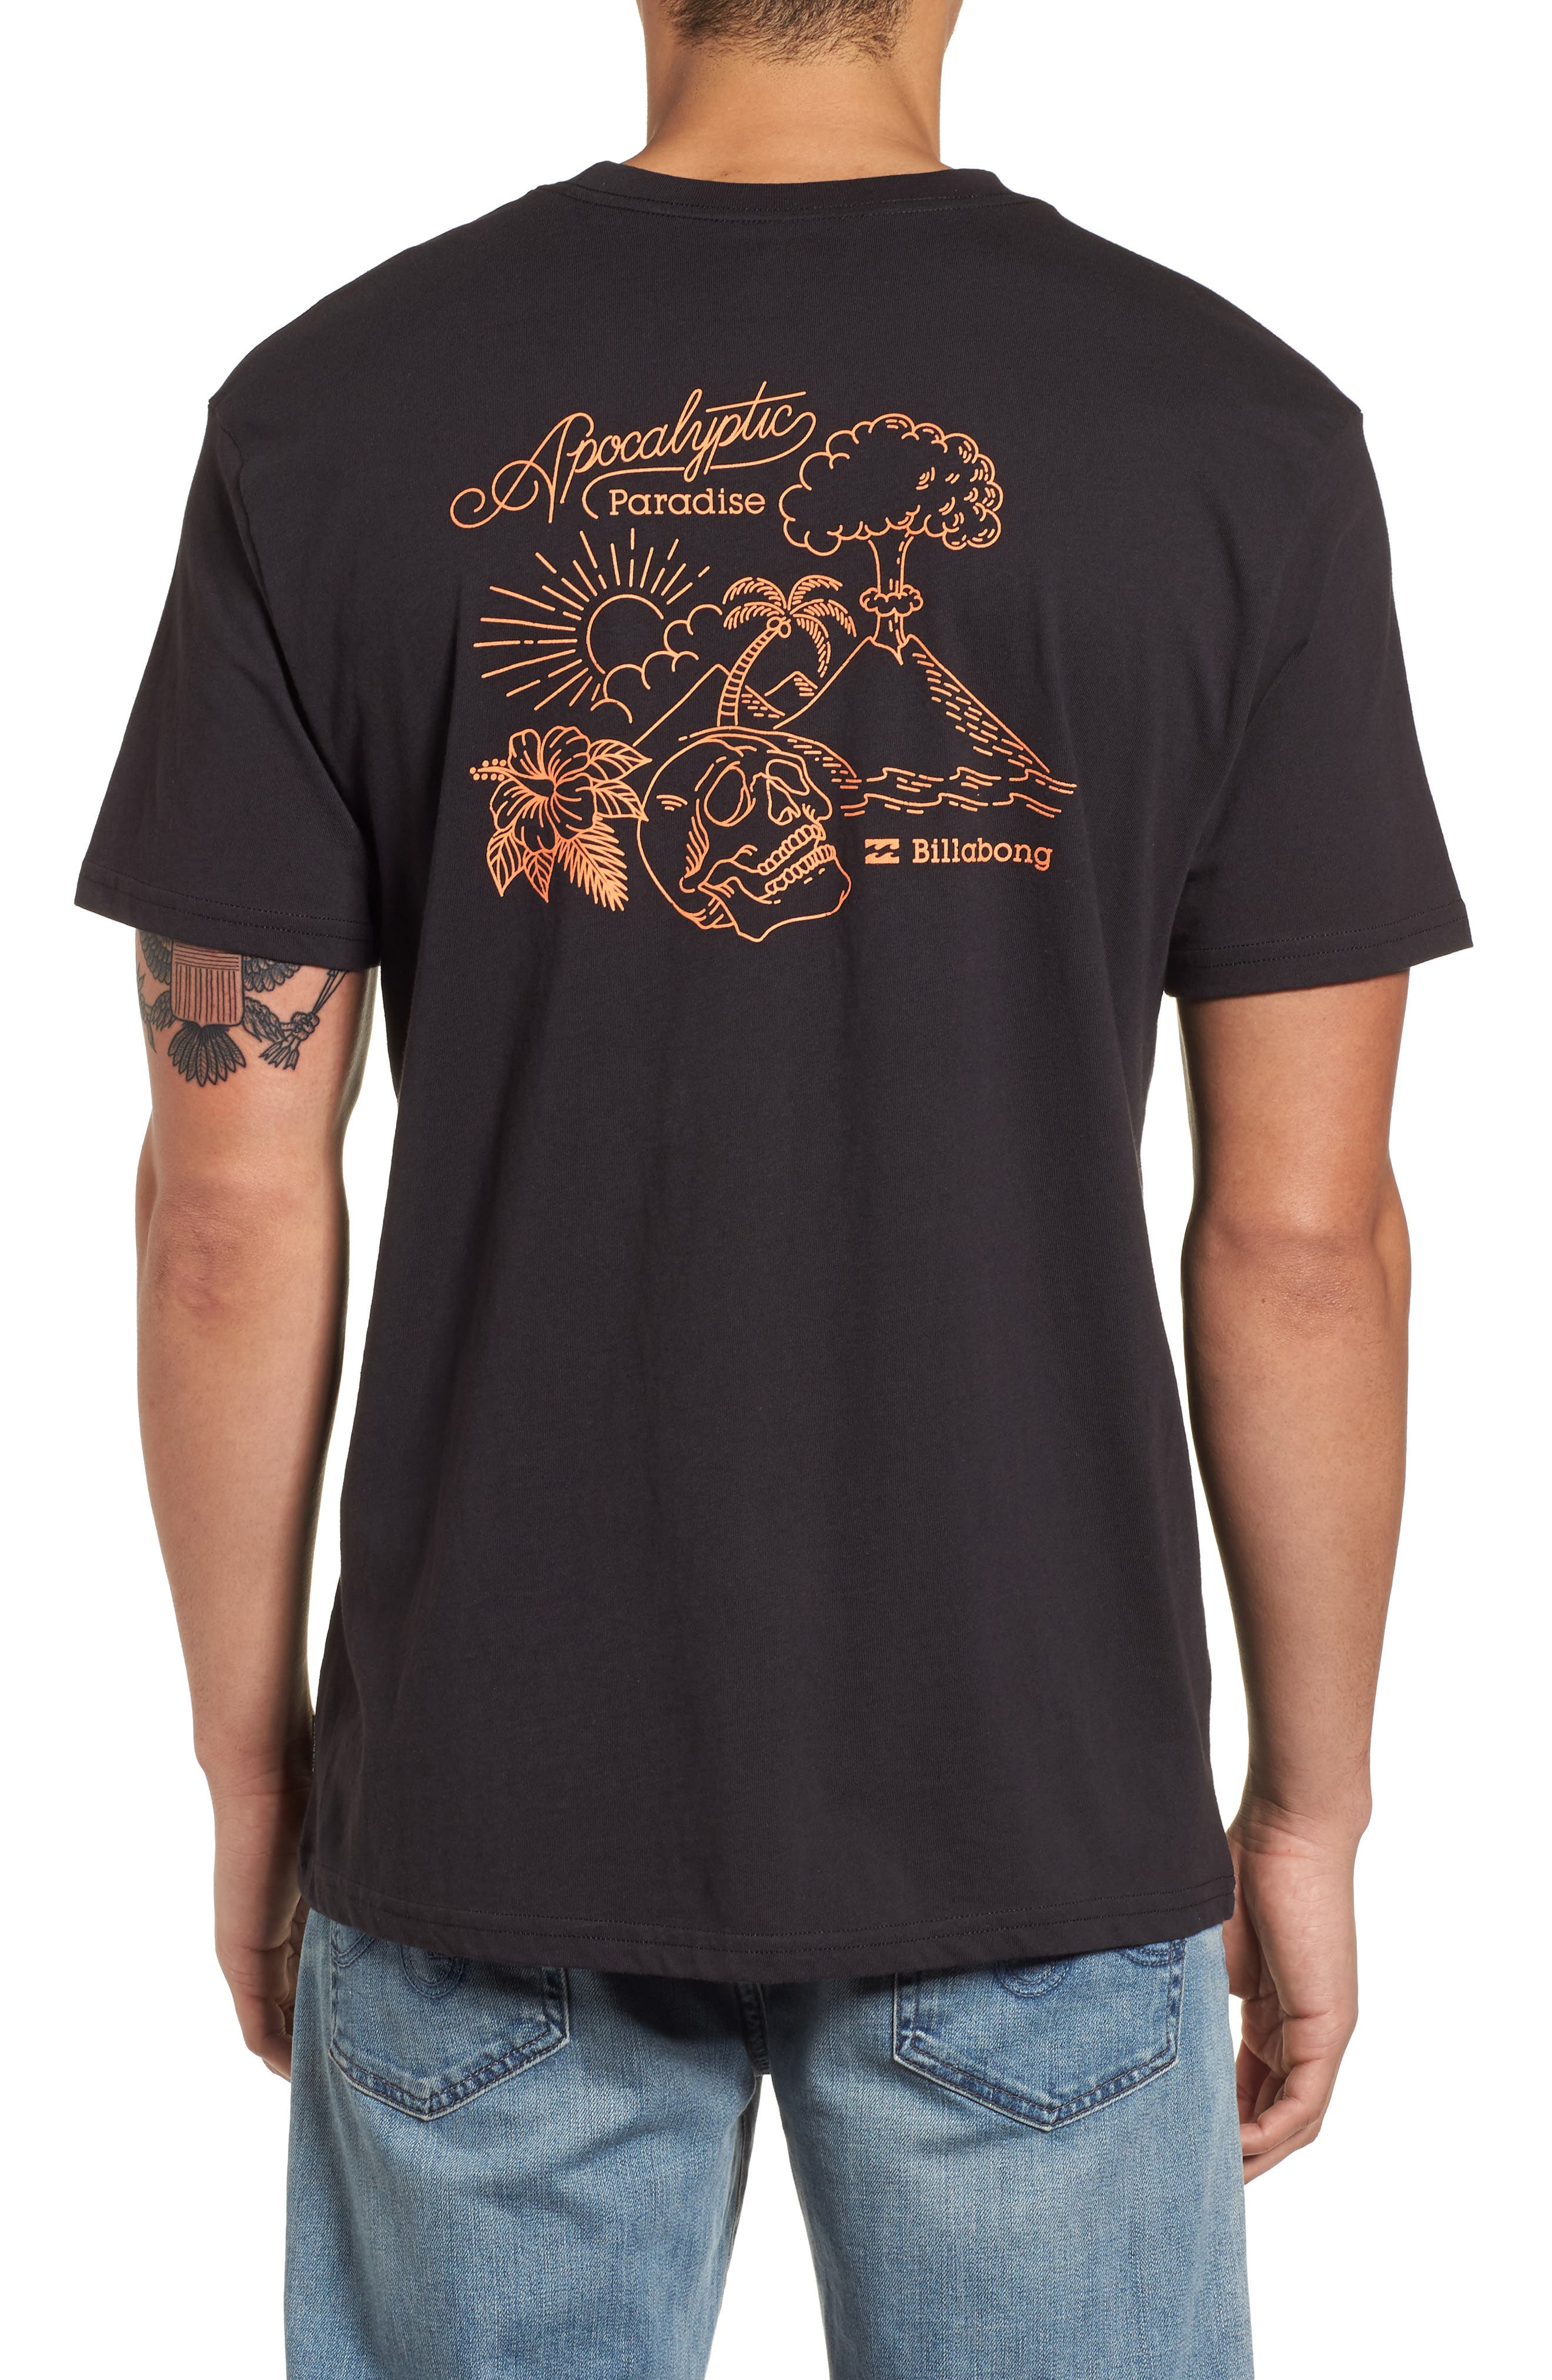 Apocalyptic Graphic T-Shirt,                             Alternate thumbnail 2, color,